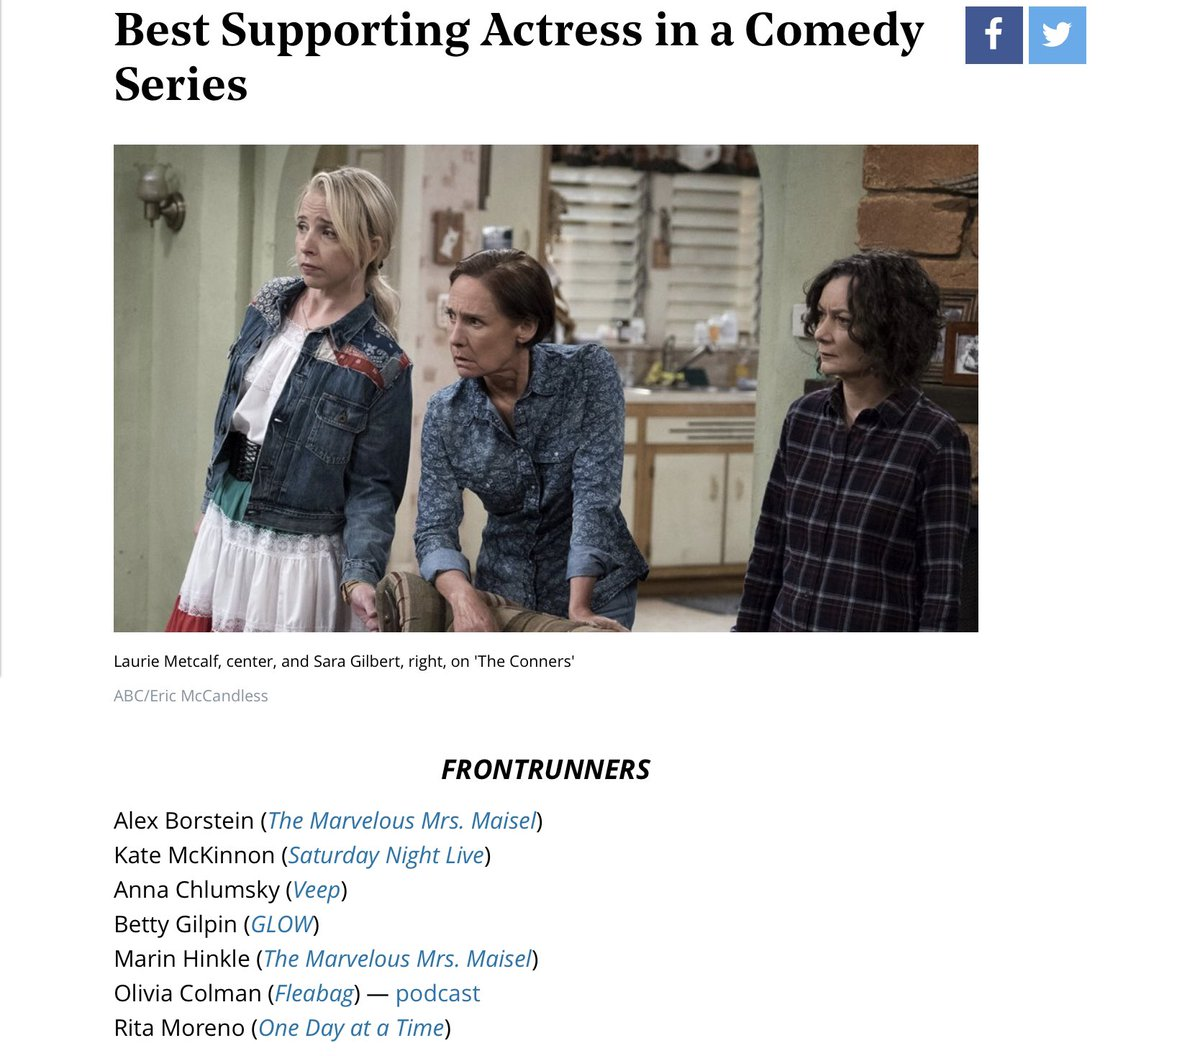 @MikeRoyce @everythingloria Yes, please recognize the fabulous #RitaMoreno #OneDayAtATime Best Supporting Actress in a Comedy Series - Feinberg Forecast: Scott&#39;s First Read of the 2019 Emmys Race  https://www. hollywoodreporter.com/lists/feinberg -forecast-2019-emmy-predictions-1185853/item/best-supporting-actress-a-comedy-series-1203242 &nbsp; …  via @THR<br>http://pic.twitter.com/S3kw48pcNz